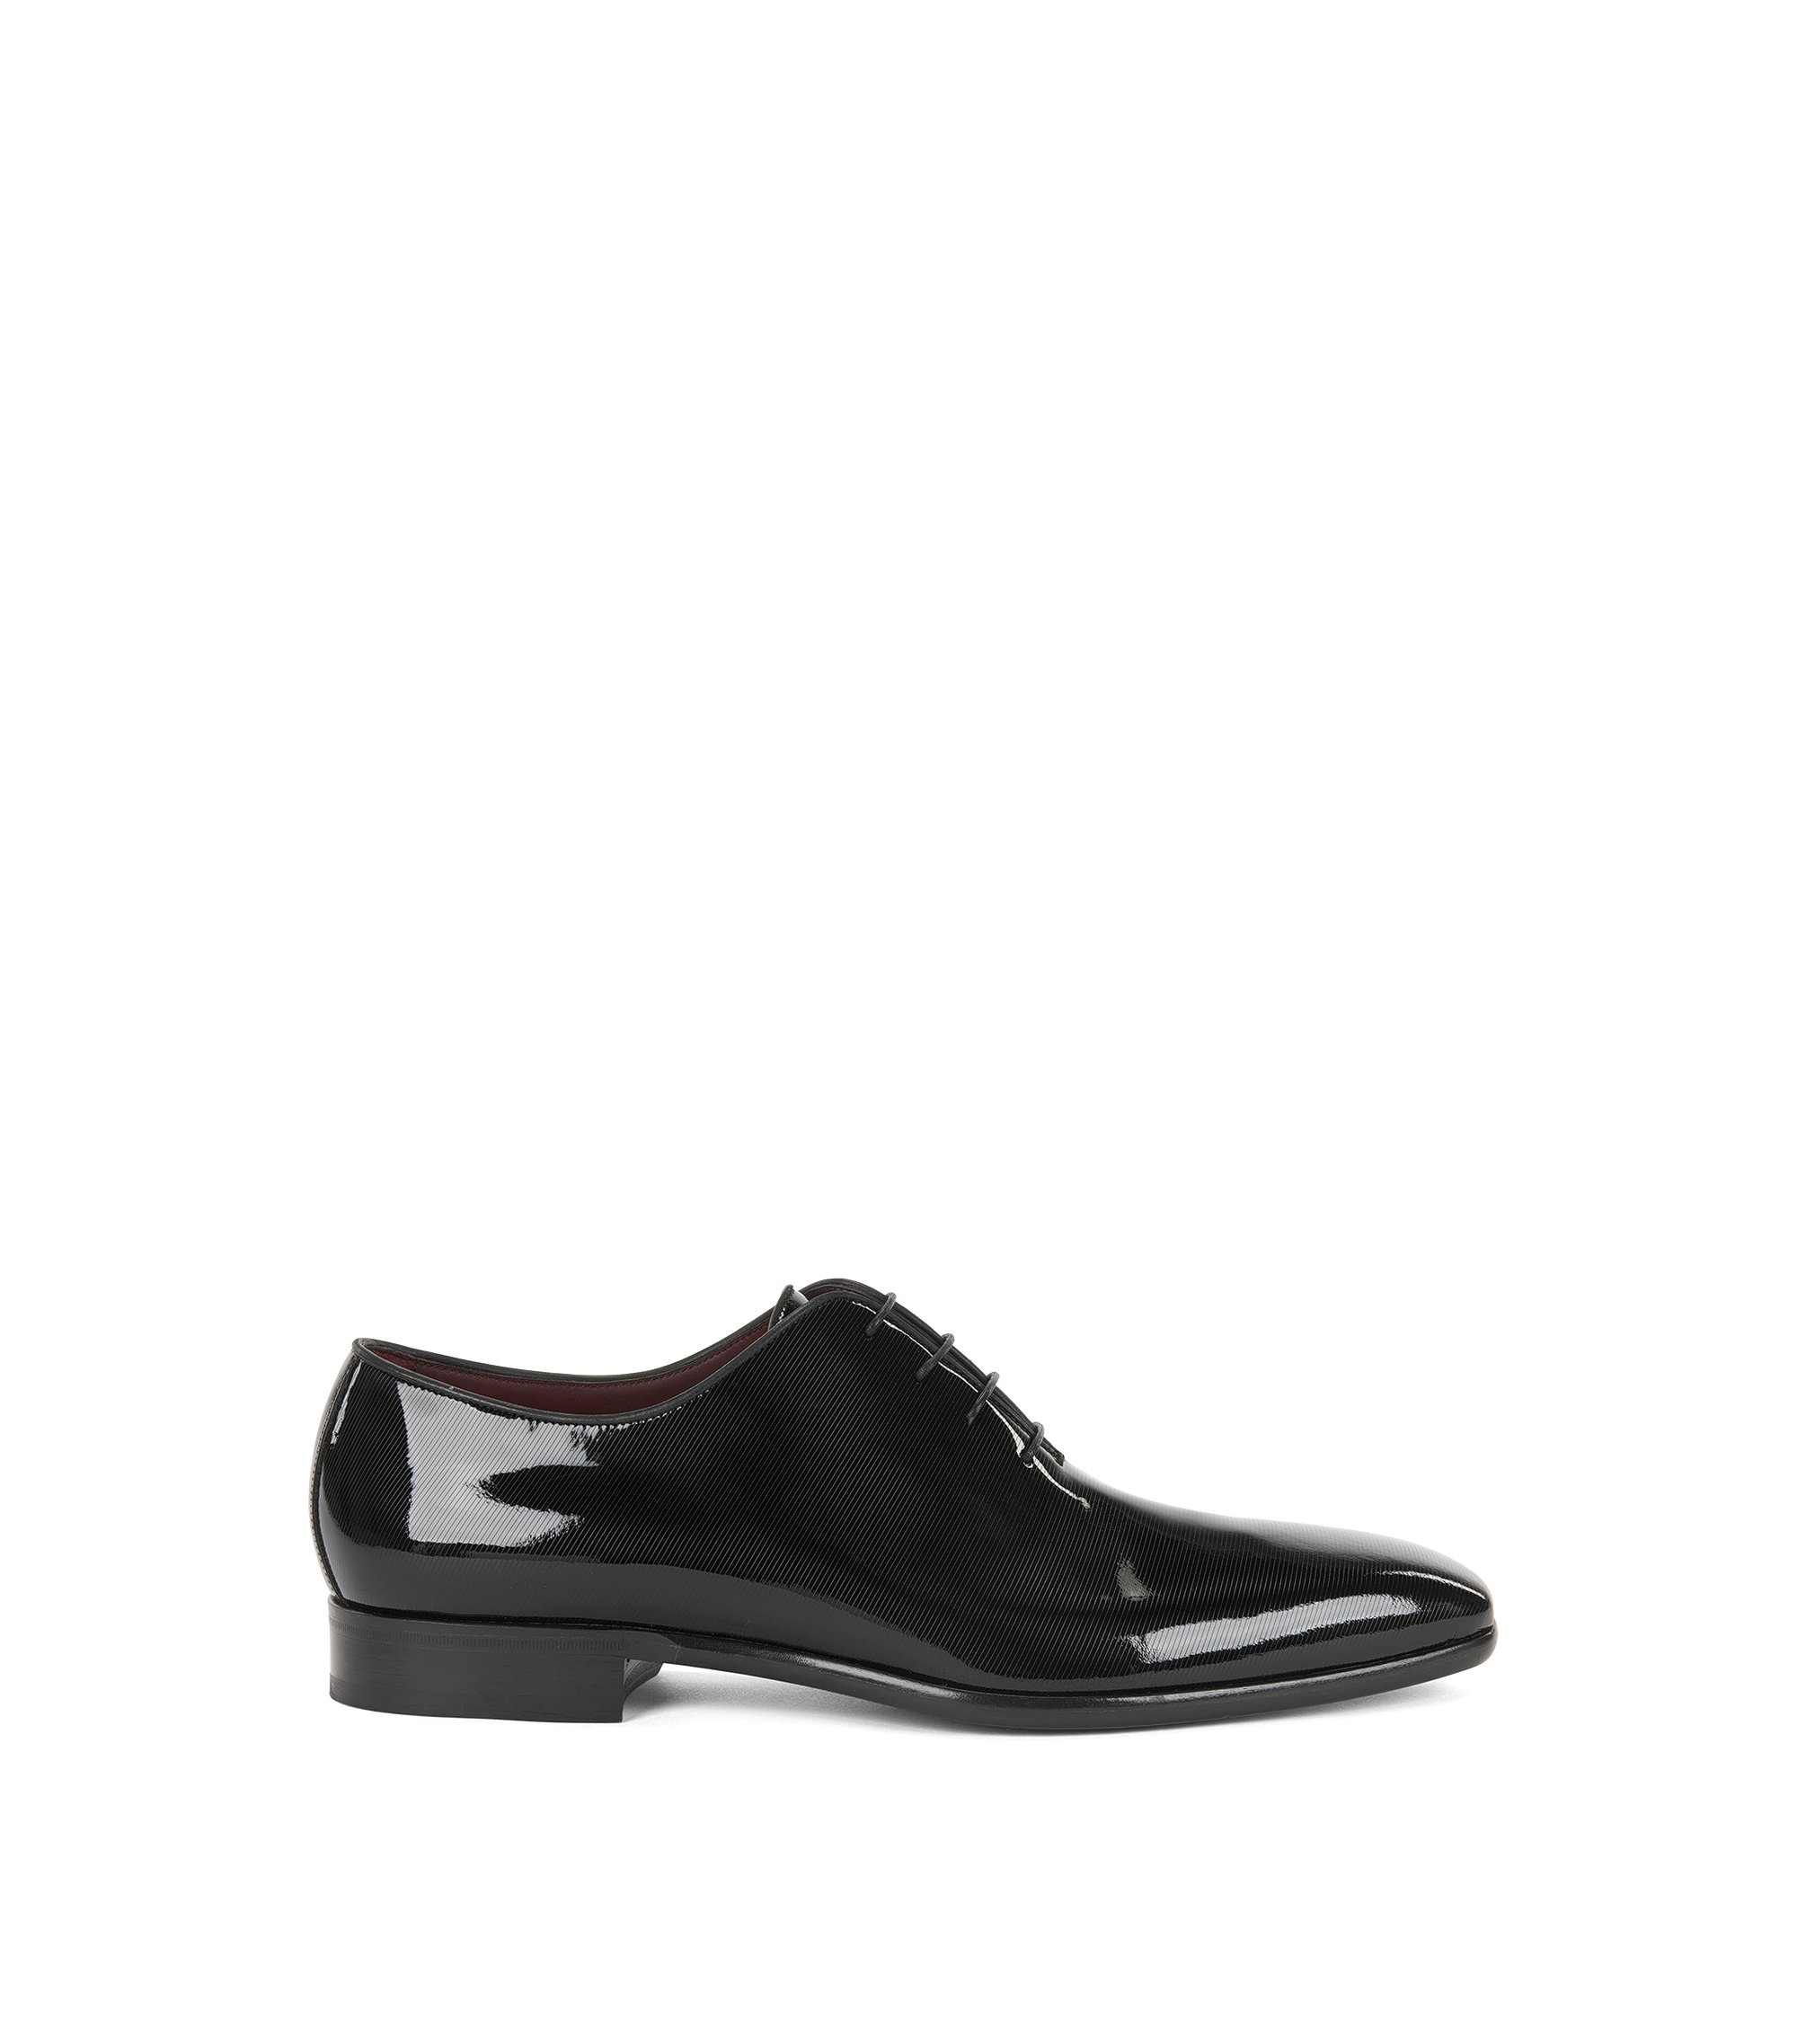 Zapatos Oxford en charol estampado, Negro